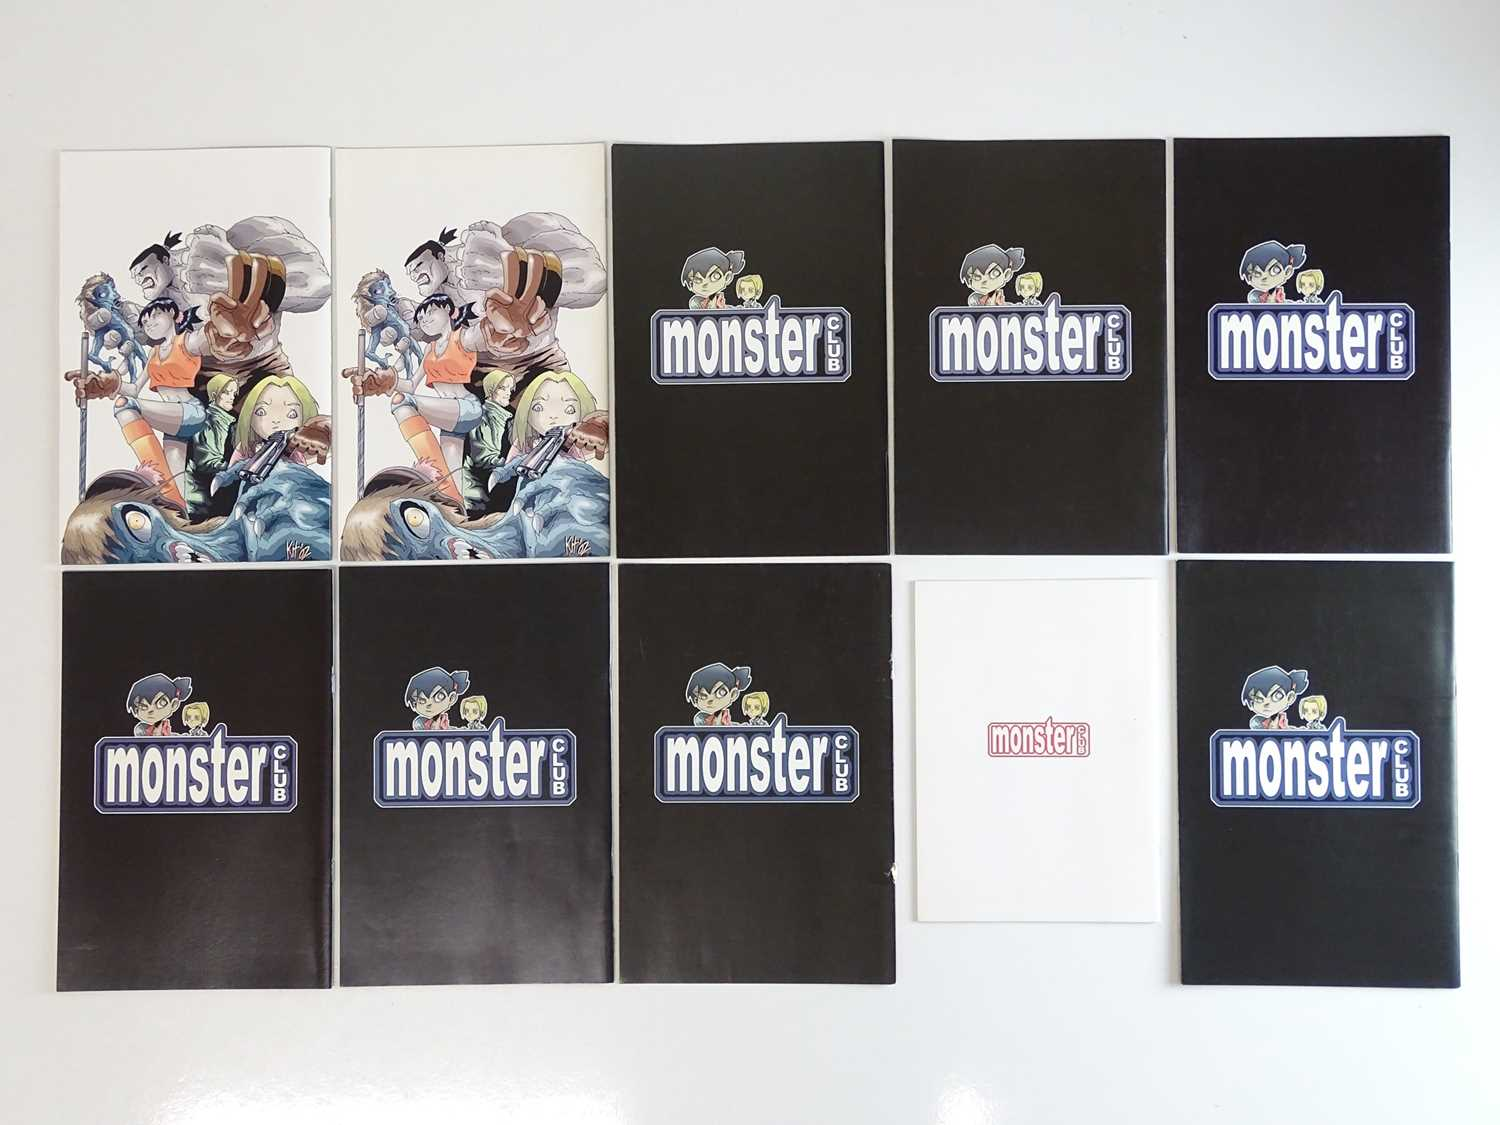 MONSTER CLUB LOT - (10 in Lot) - (2002 - DC) - First Printings - Includes MONSTER CLUB #0 - Origin - Image 2 of 5